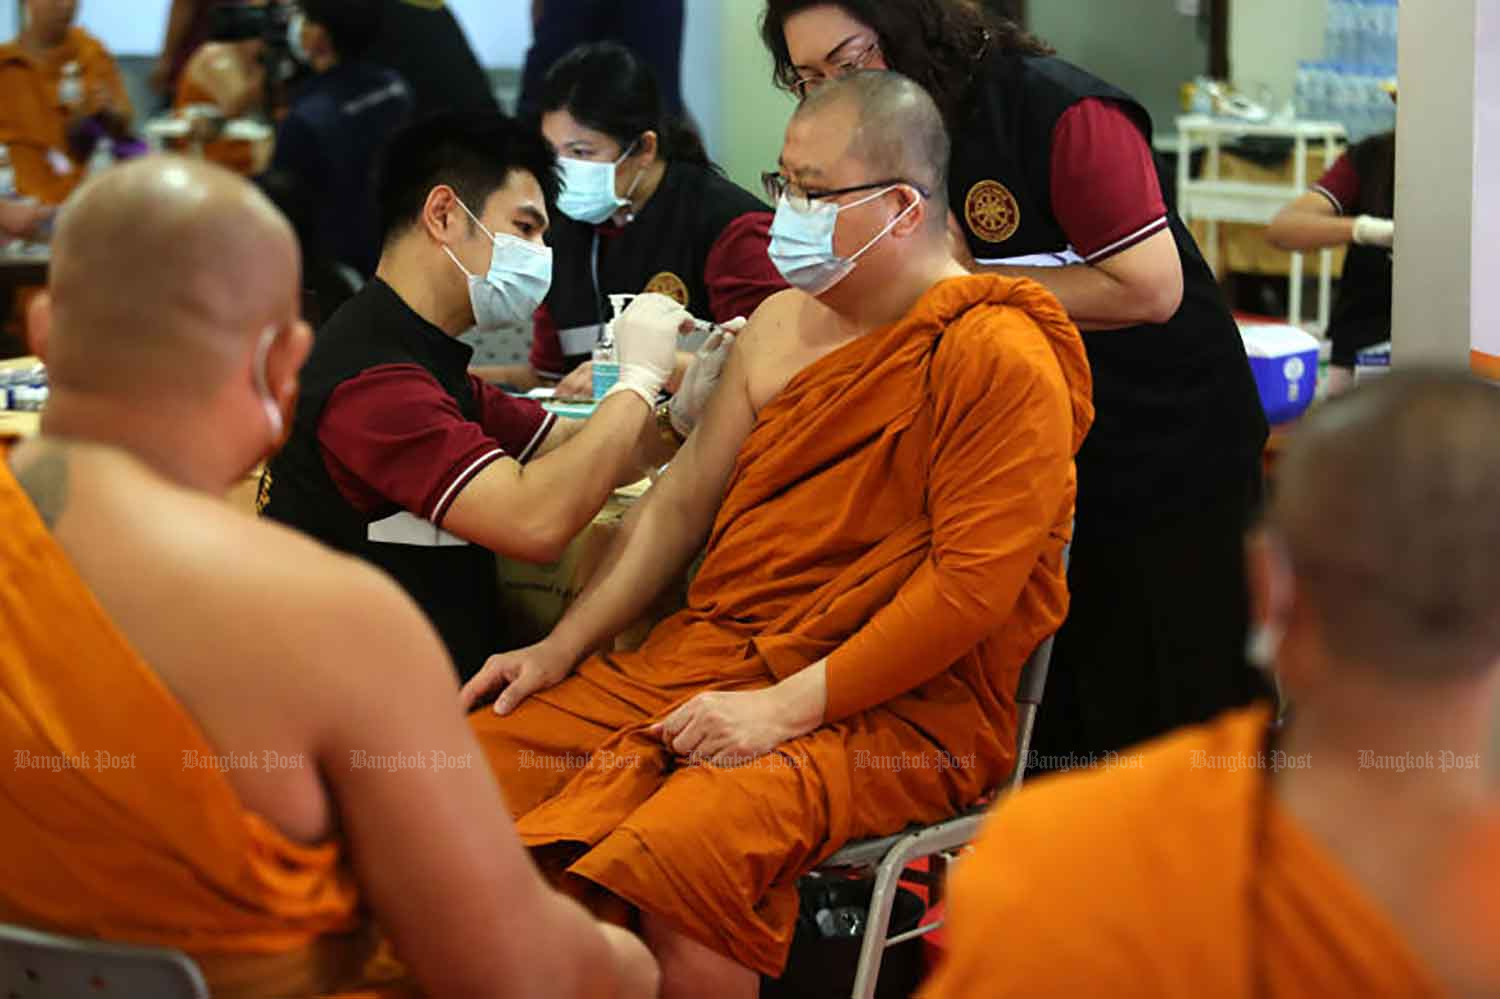 A monk is vaccinated against Covid-19 at Wat Trai Mit Witthayaram on the first day of vaccination for monks in Bangkok on Wednesday. Only those who have passed a health check can receive the vaccine. (Photo: Wichan Charoenkiatpakul)